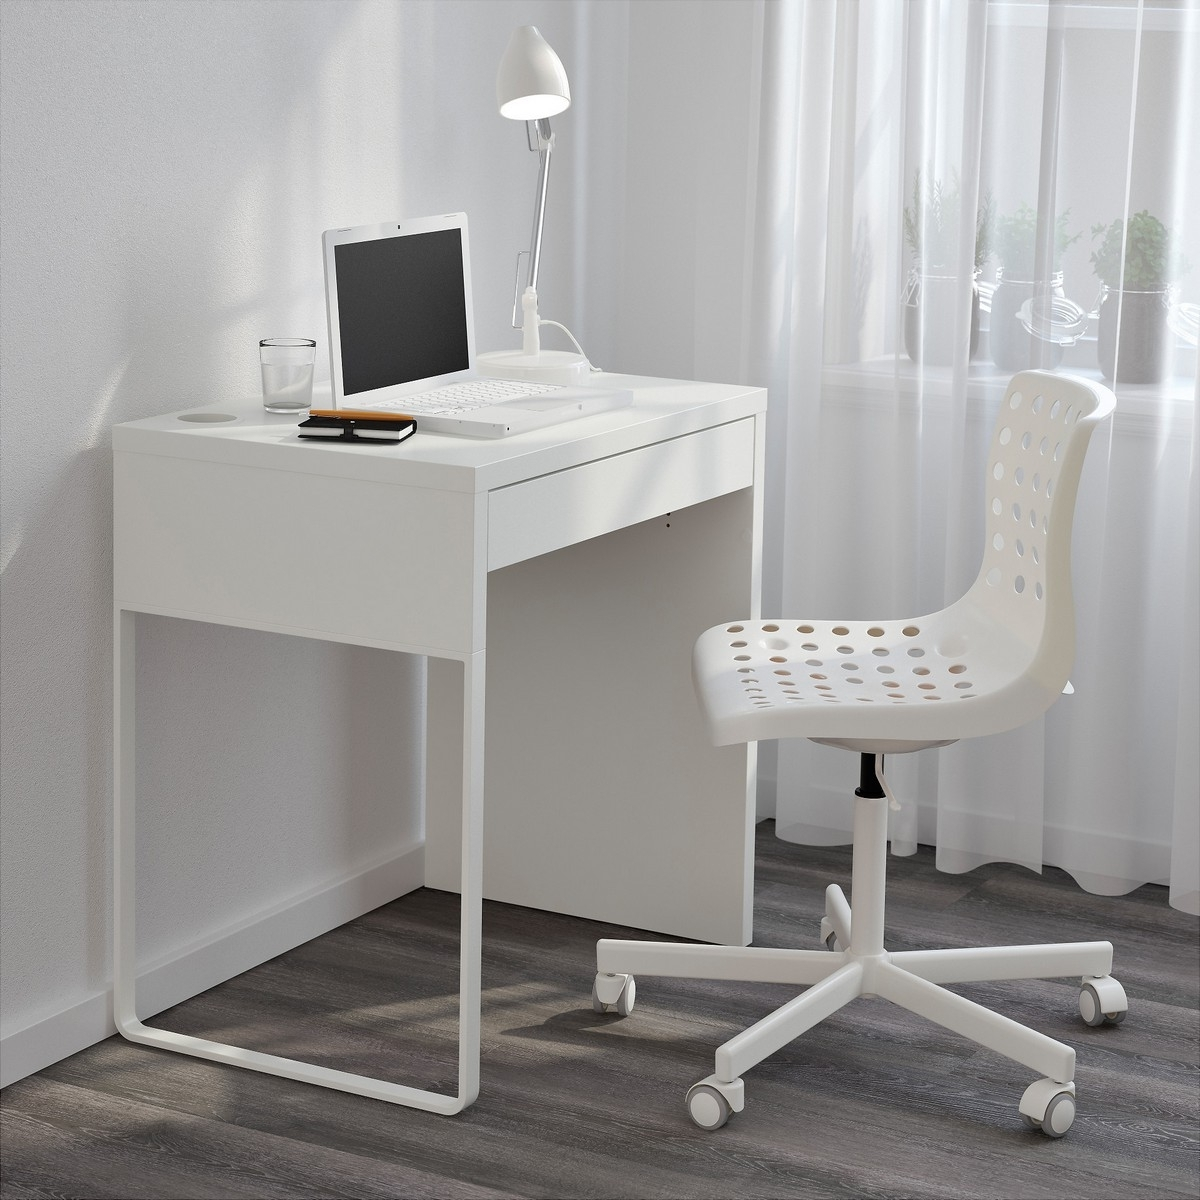 Fashionable Computer Desks For Very Small Spaces Inside Narrow Computer Desk Ikea Micke White For Small Space (View 6 of 20)